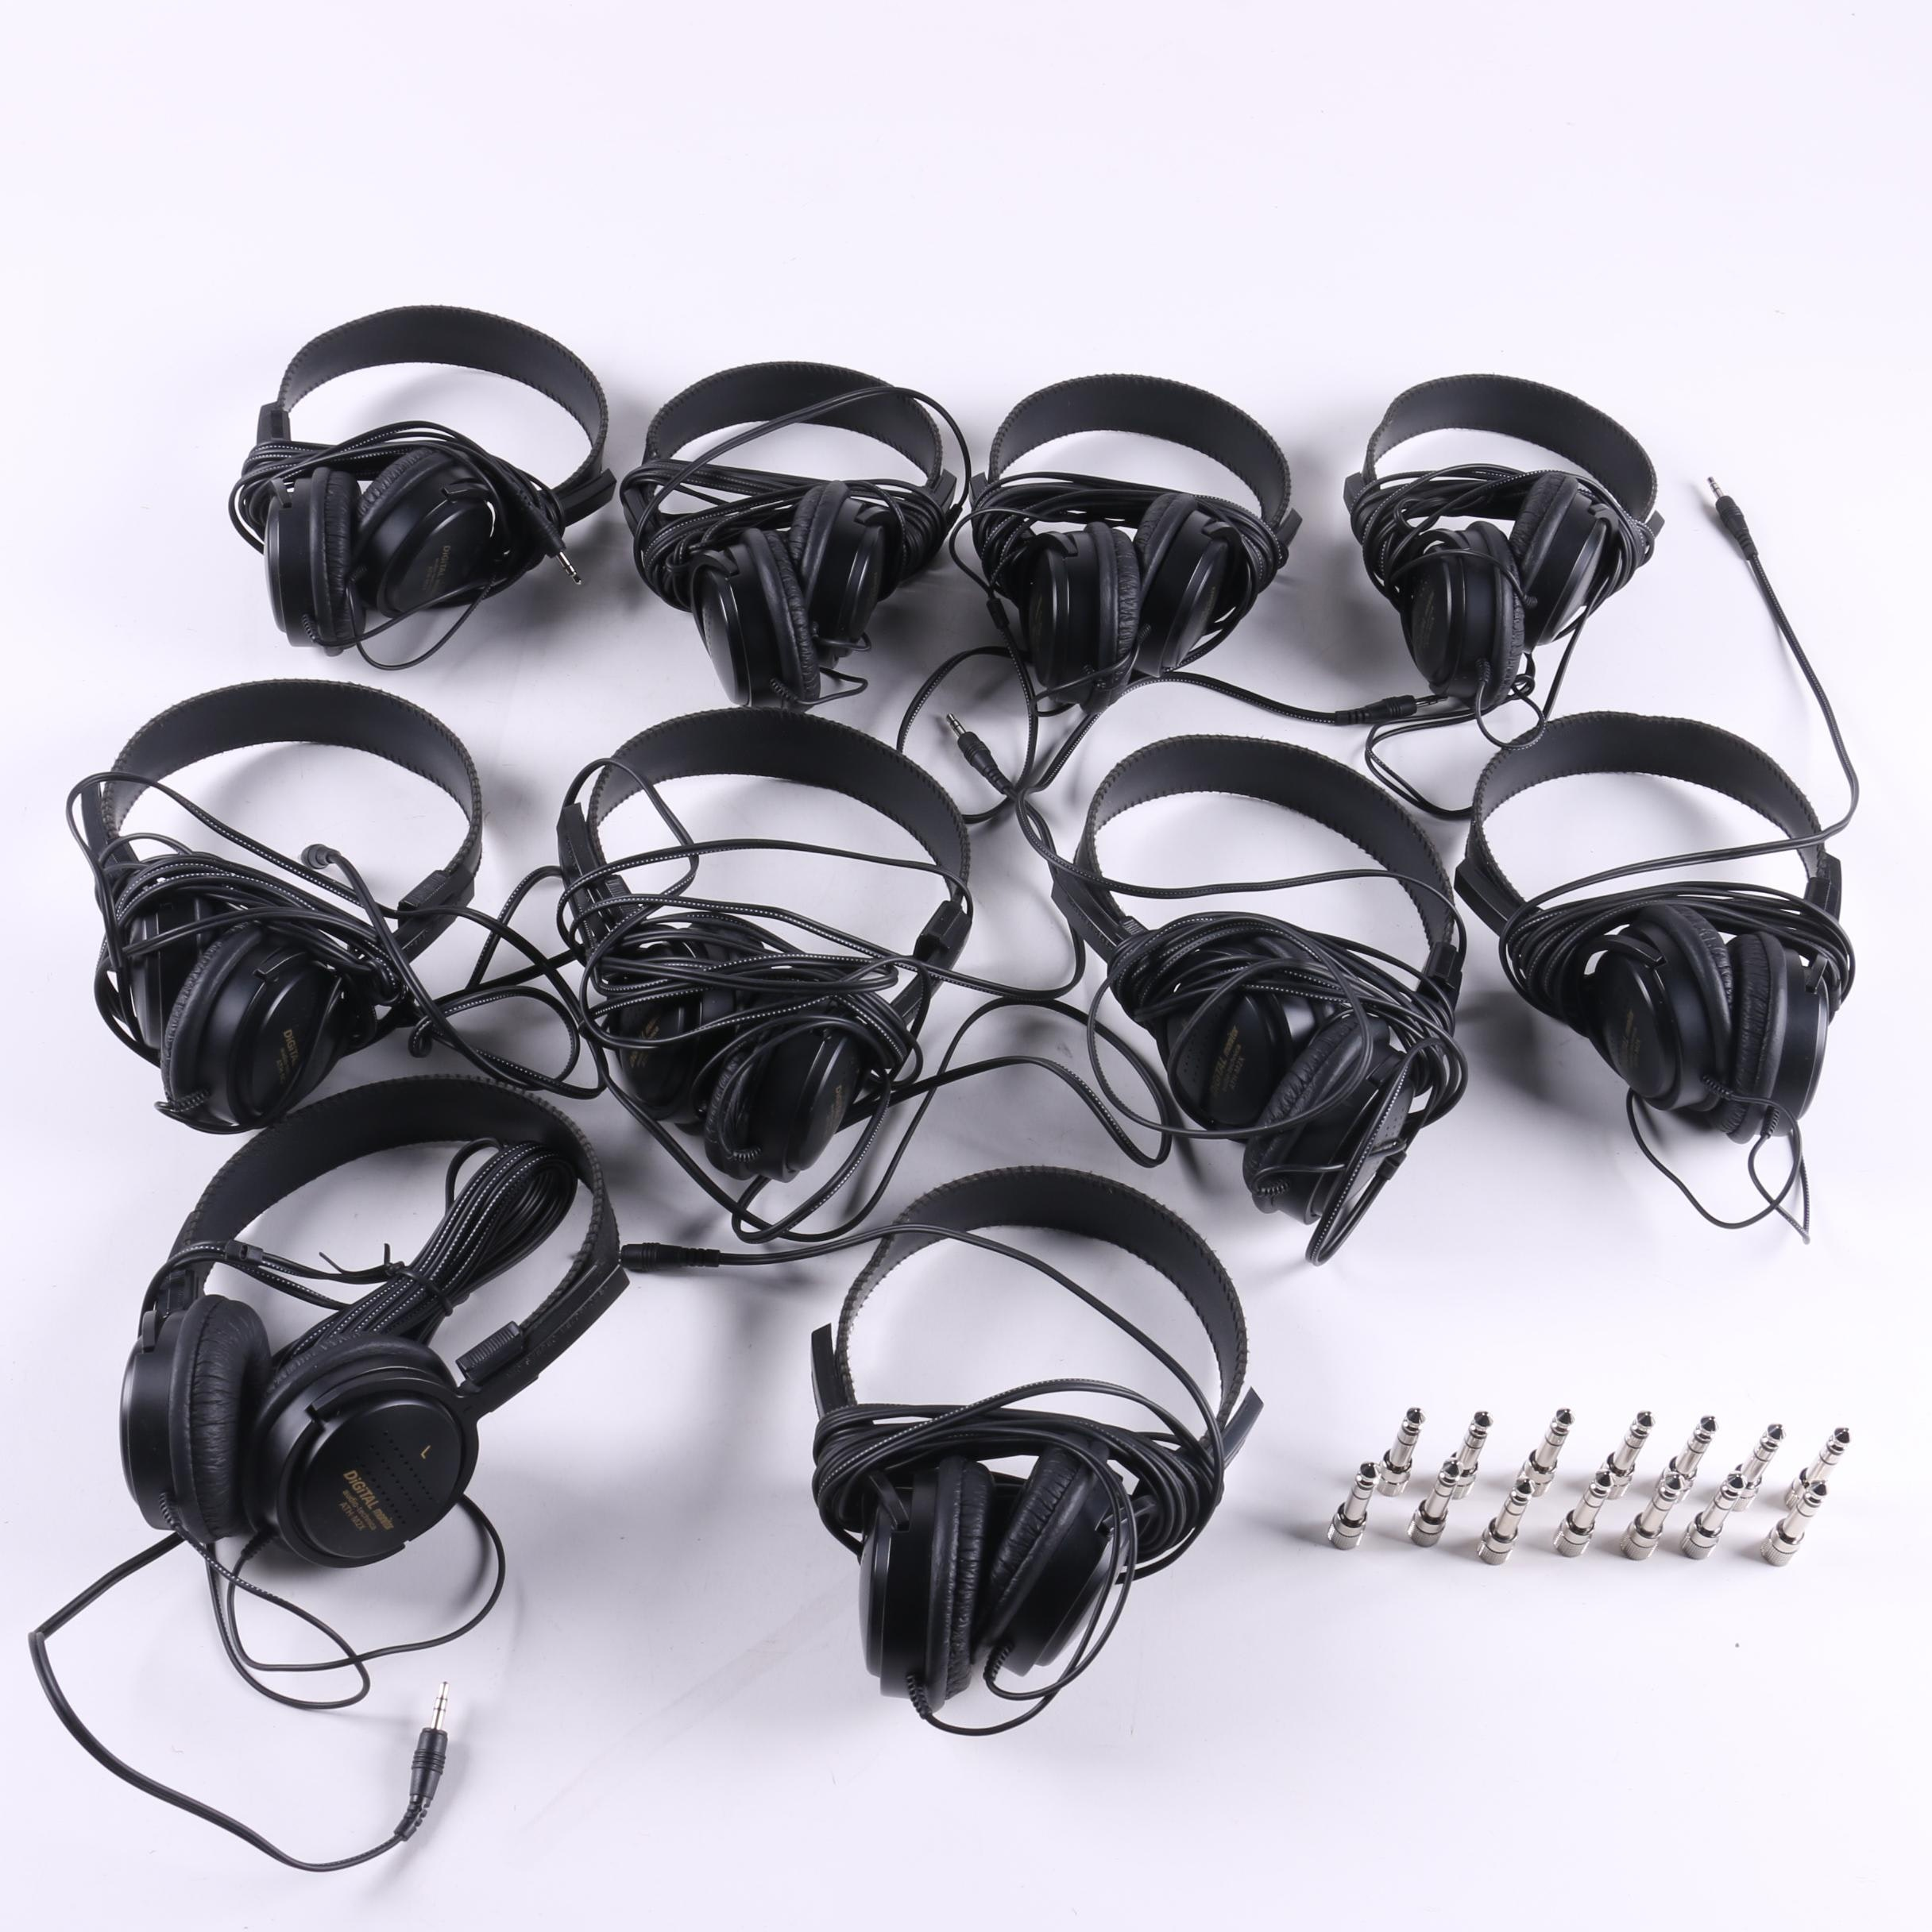 """Audio-Technica ATH-M2X Headphones with 1/4"""" Adapters"""